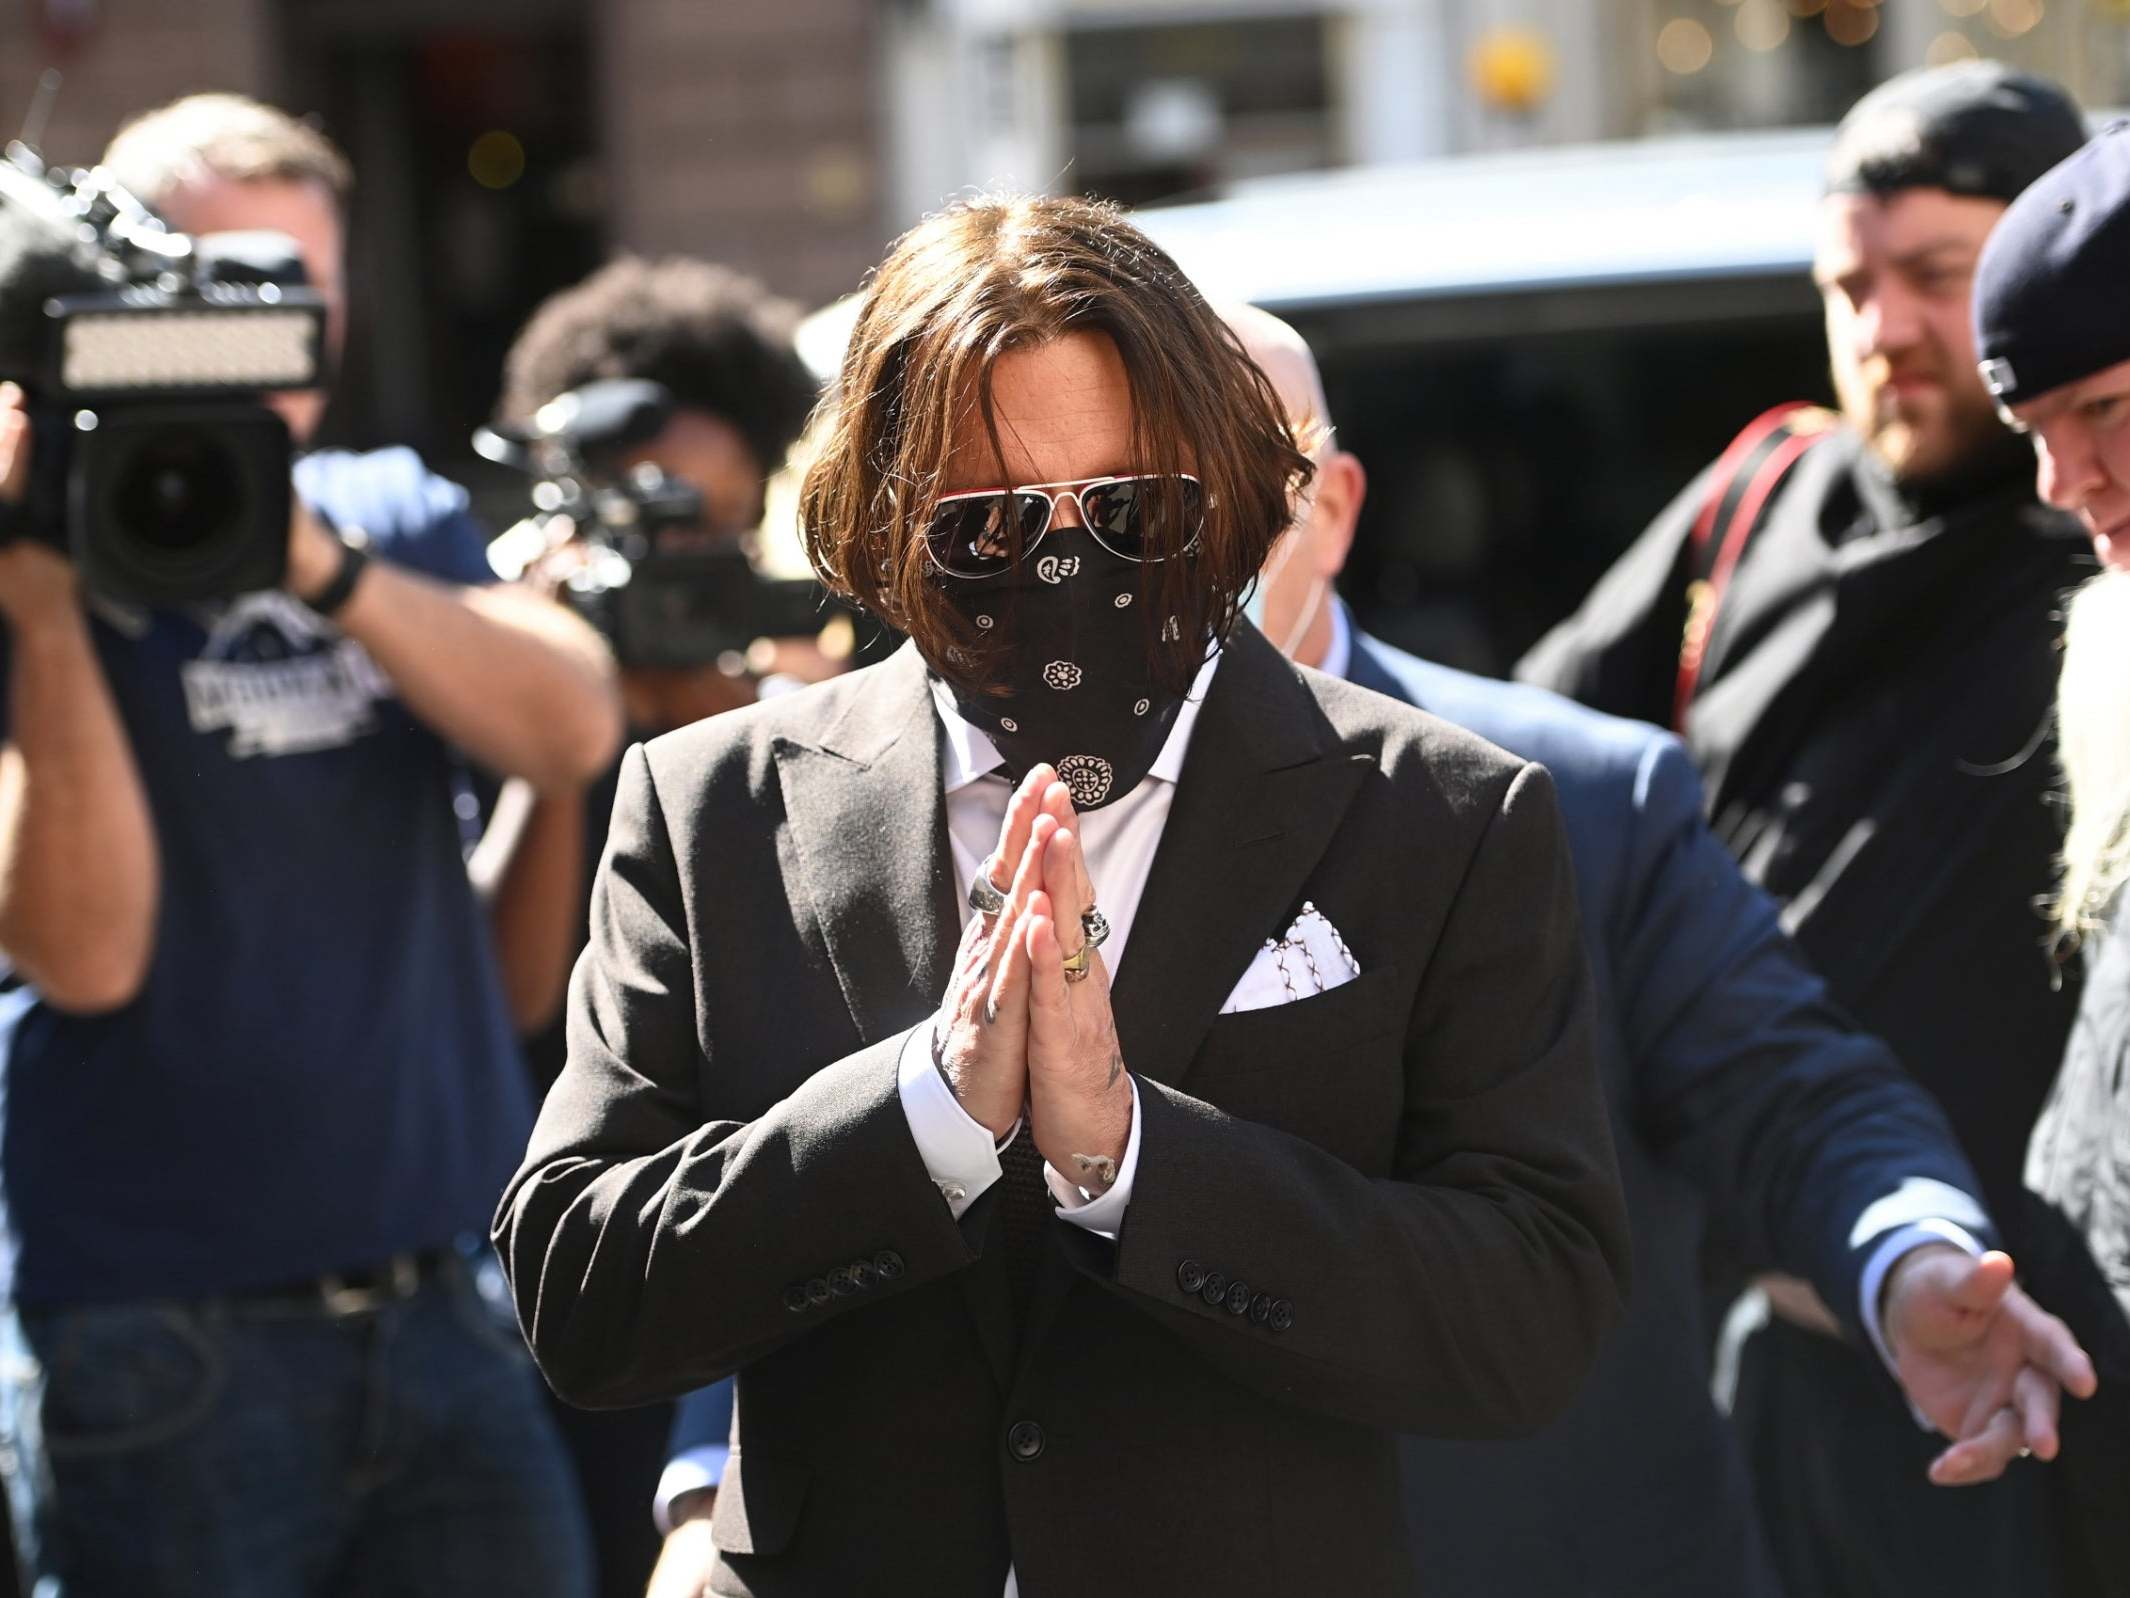 Johnny Depp libel trial: Actor says Amber Heard's domestic abuse claims  part of 'conspiracy' | The Independent | The Independent